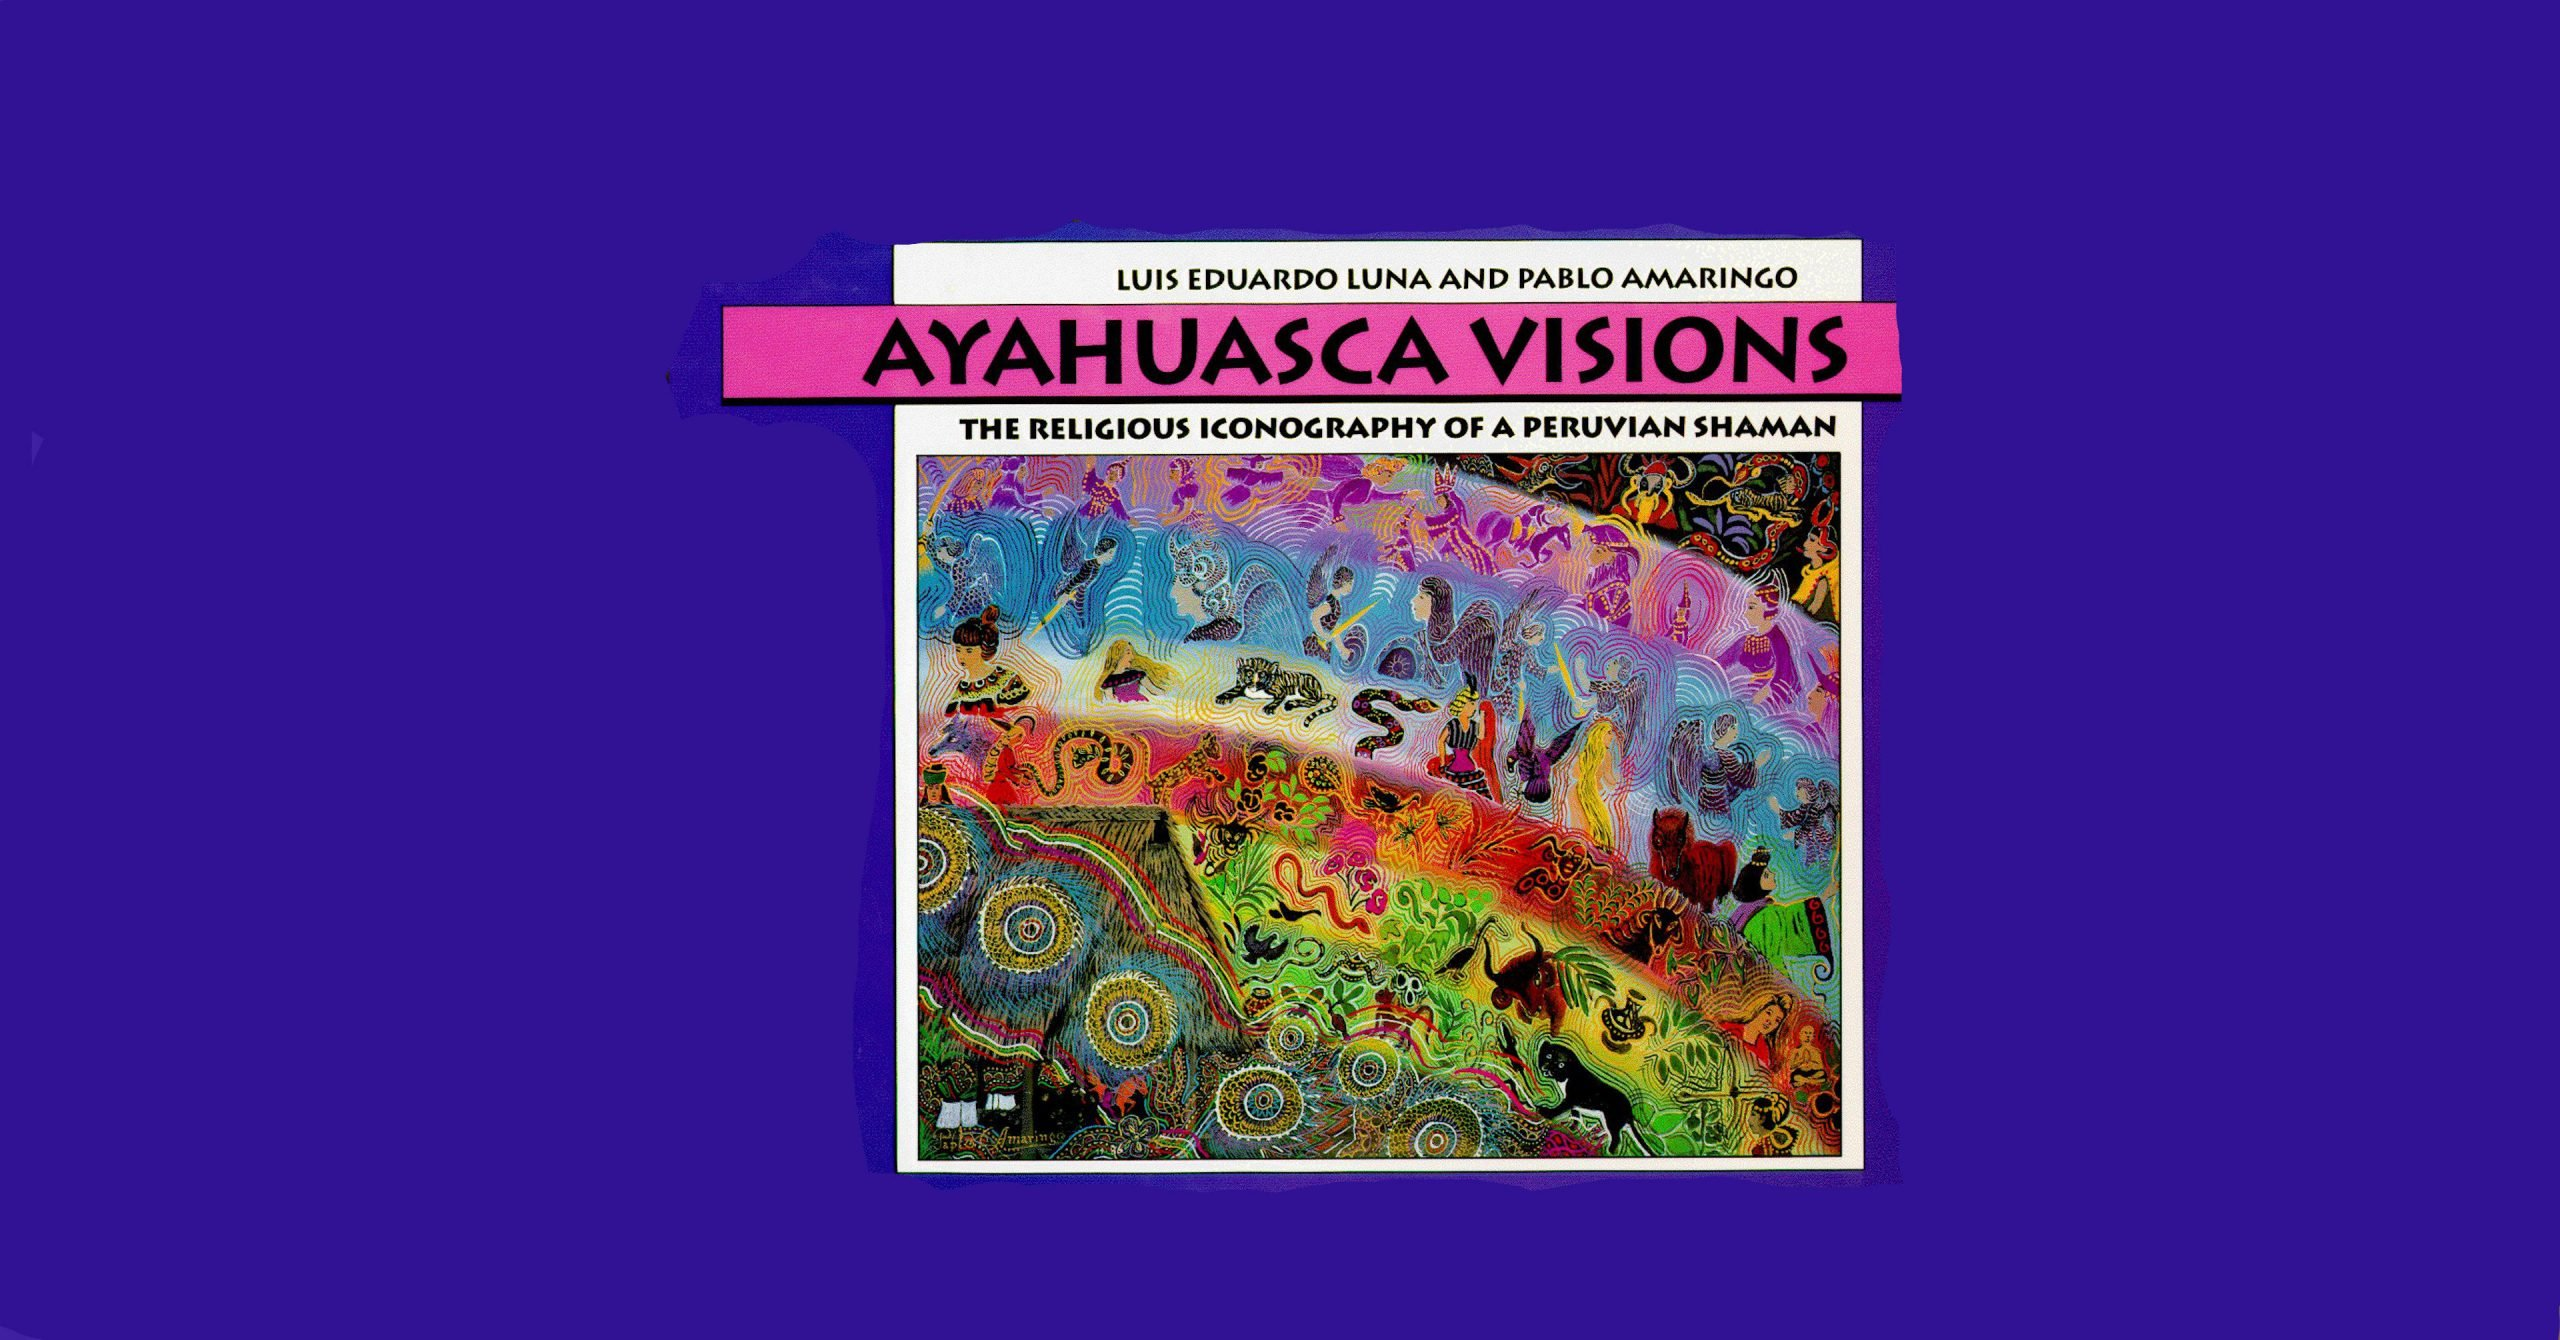 "1991 – The book ""Ayahuasca Visions"" is published by Peruvian Artist Pablo Amaringo and Anthropologist Luis Eduardo Luna"